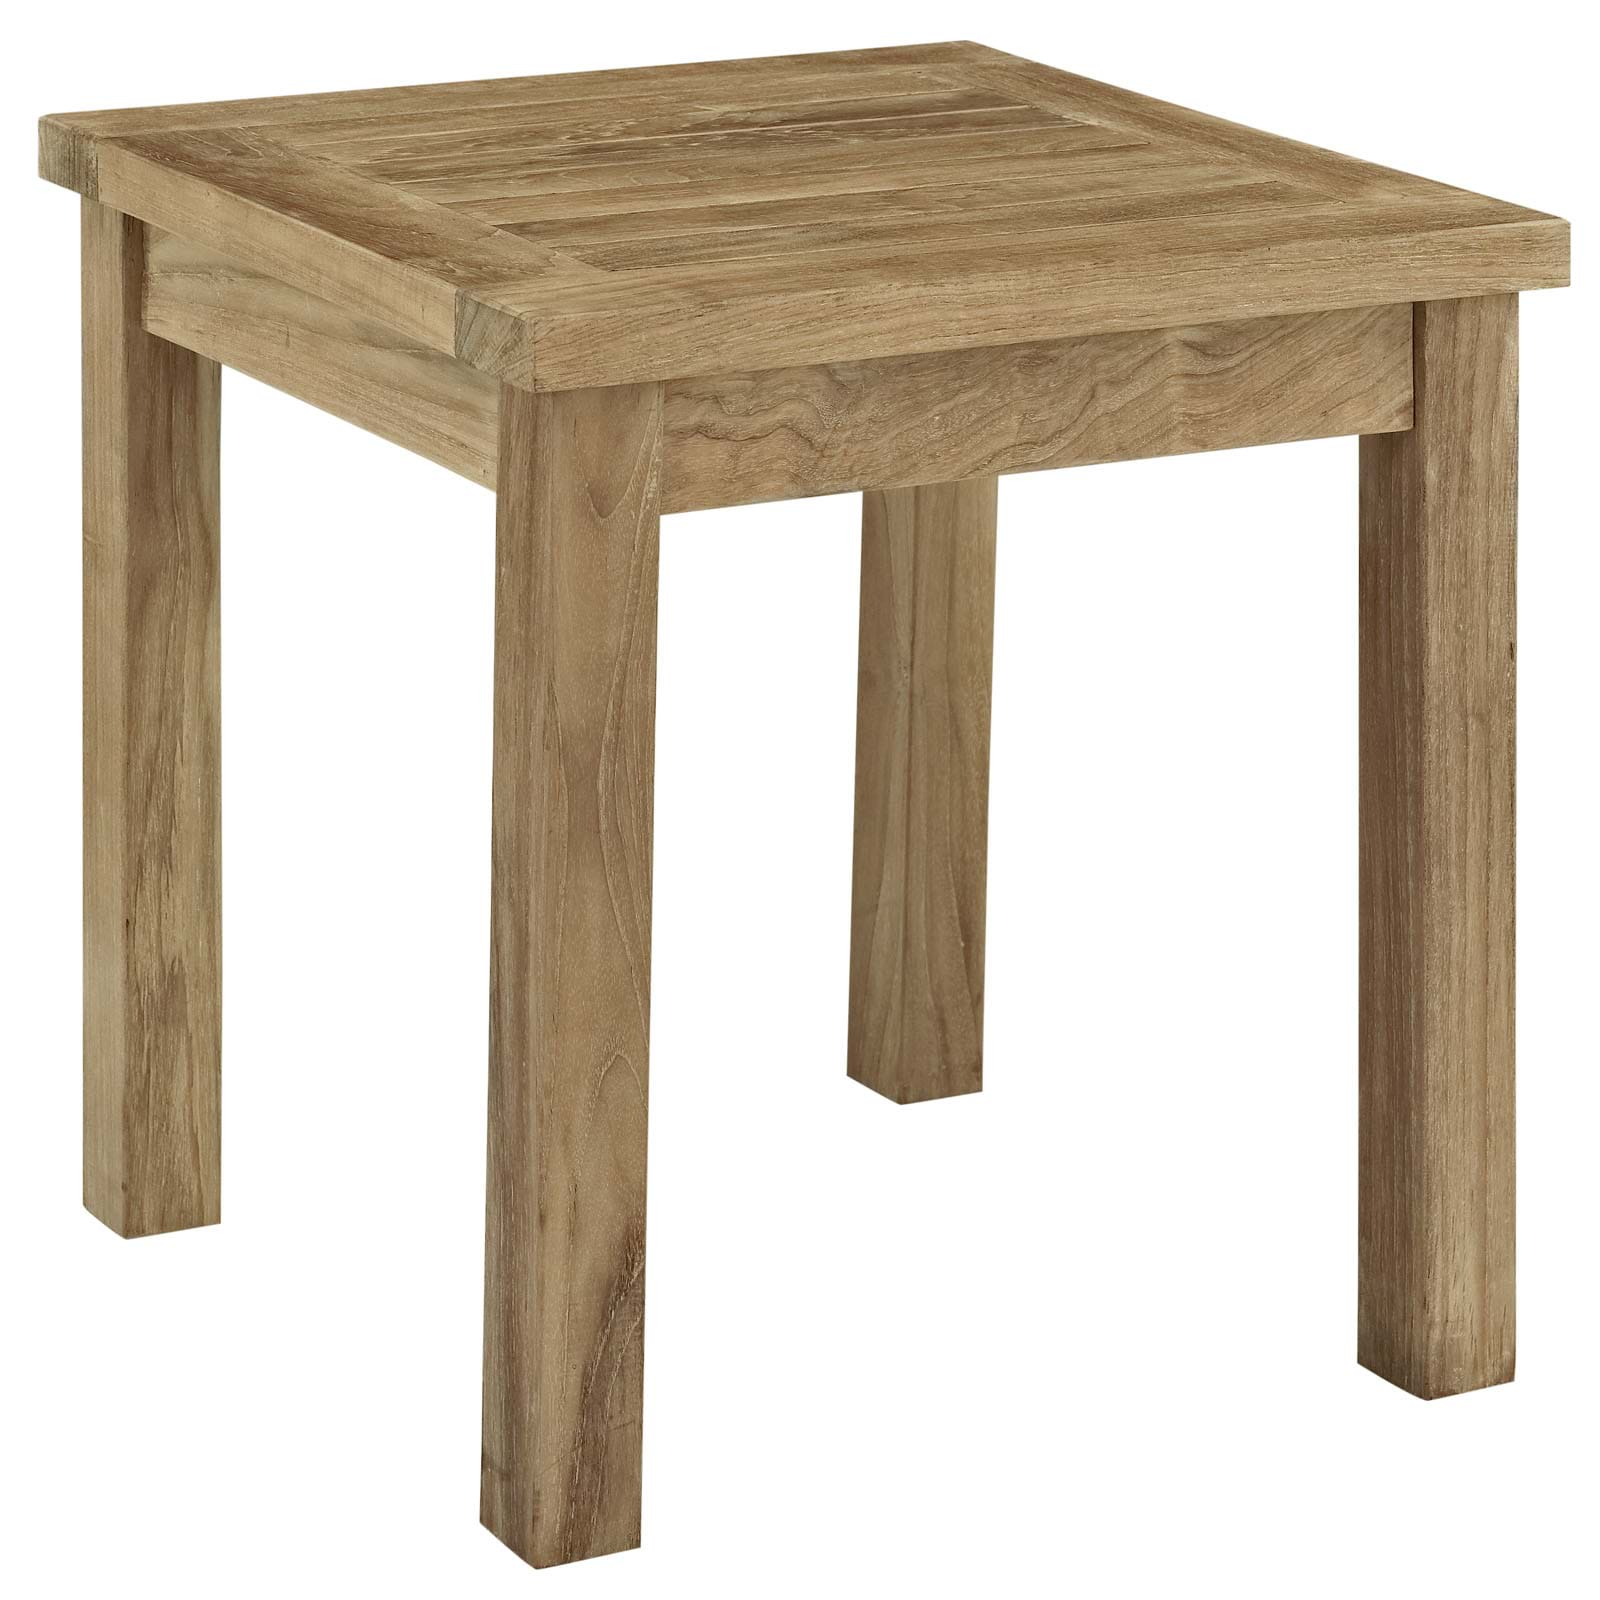 Marina Outdoor Patio Teak Side Table